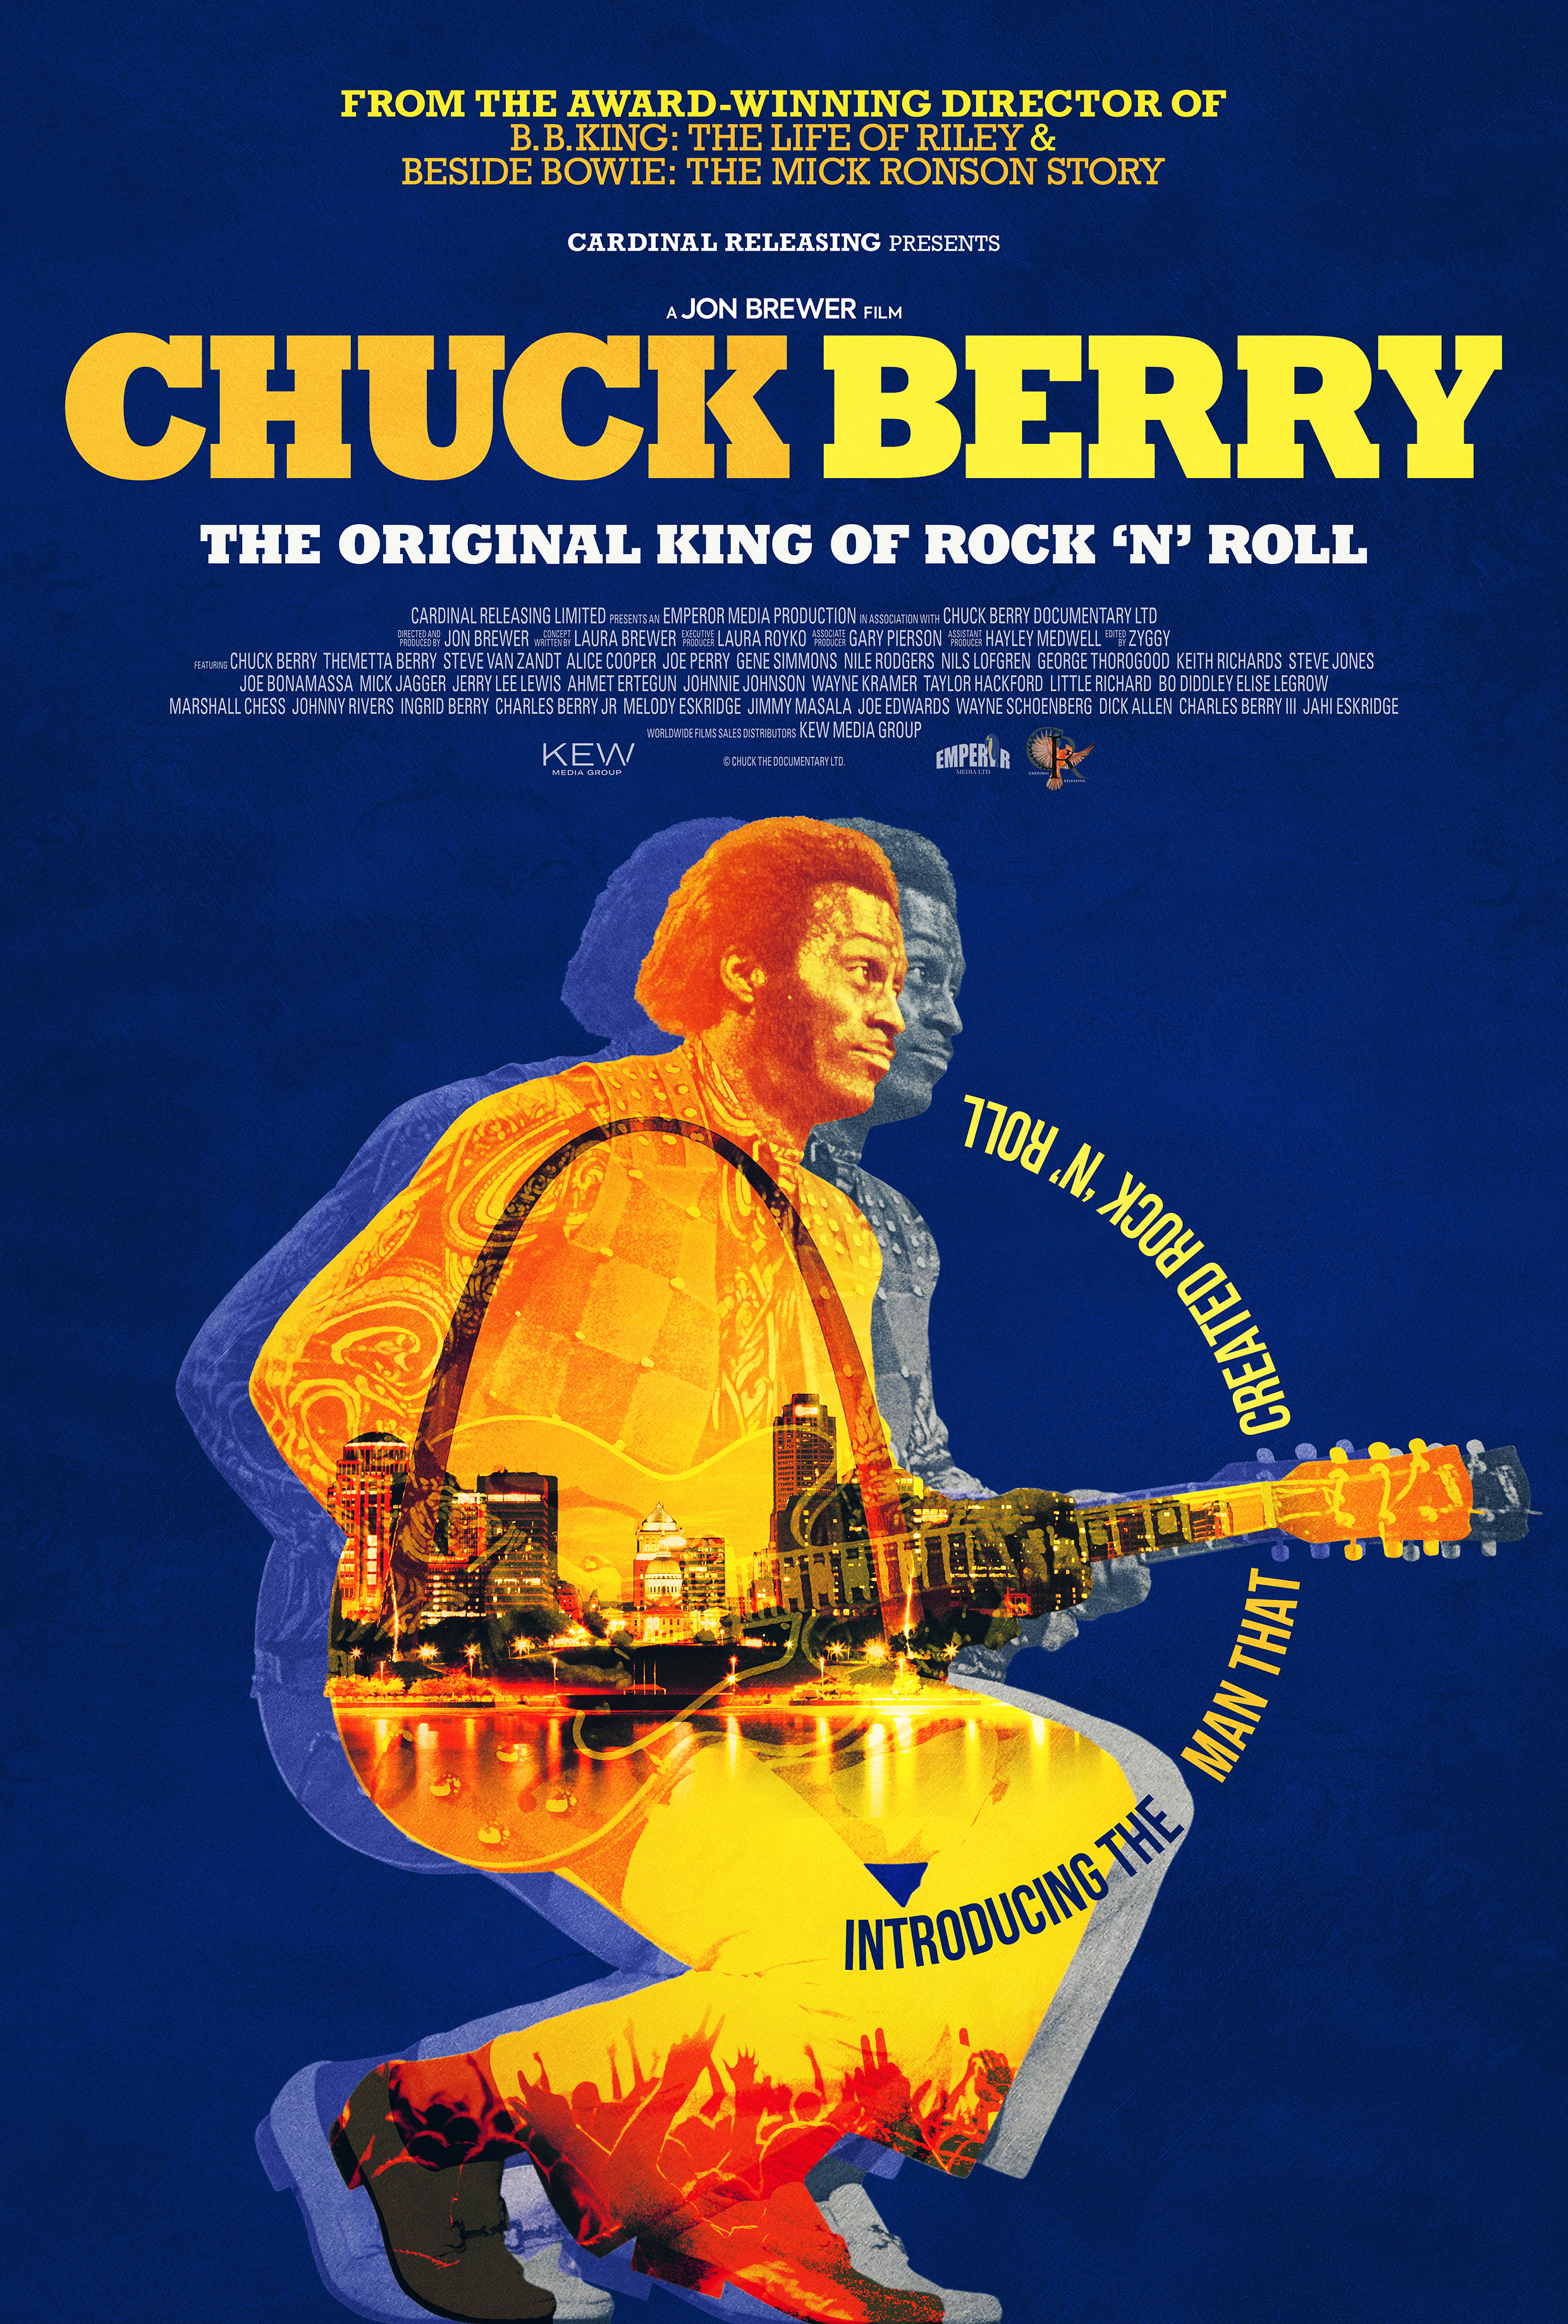 Chuck Berry: The Original King of Rock 'n' Roll